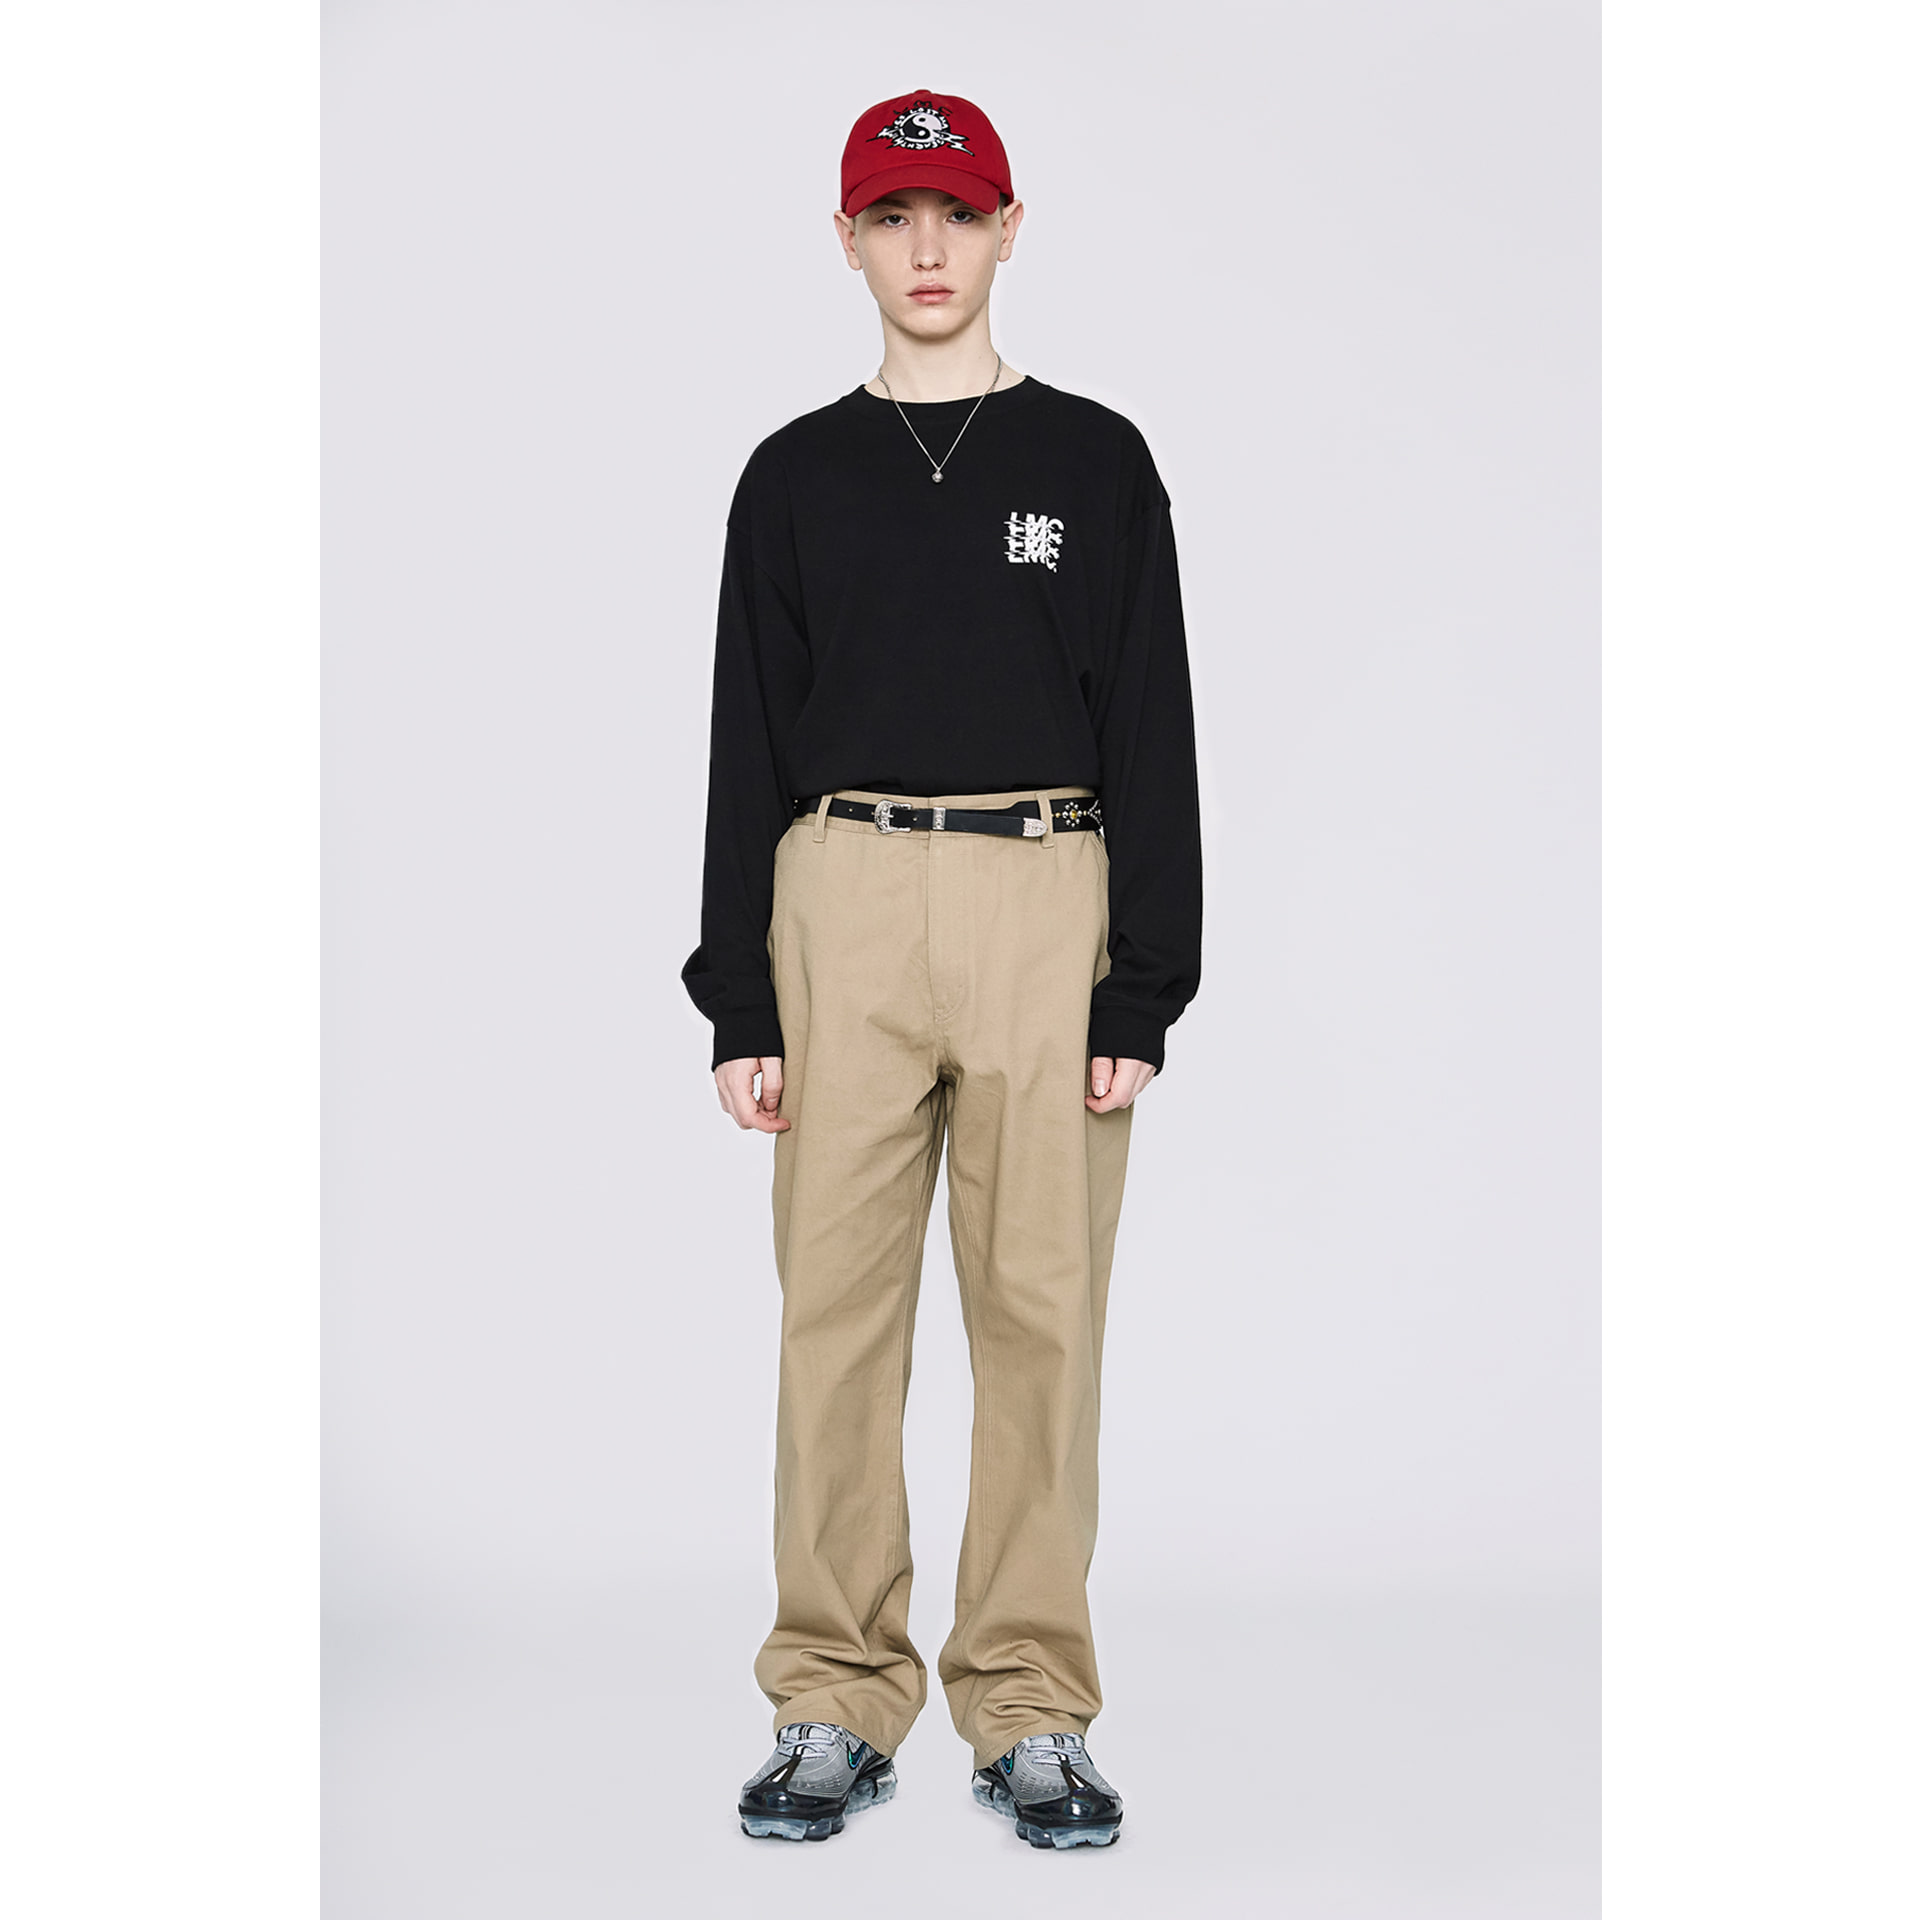 LMC BASIC FN CHINO PANTS beige